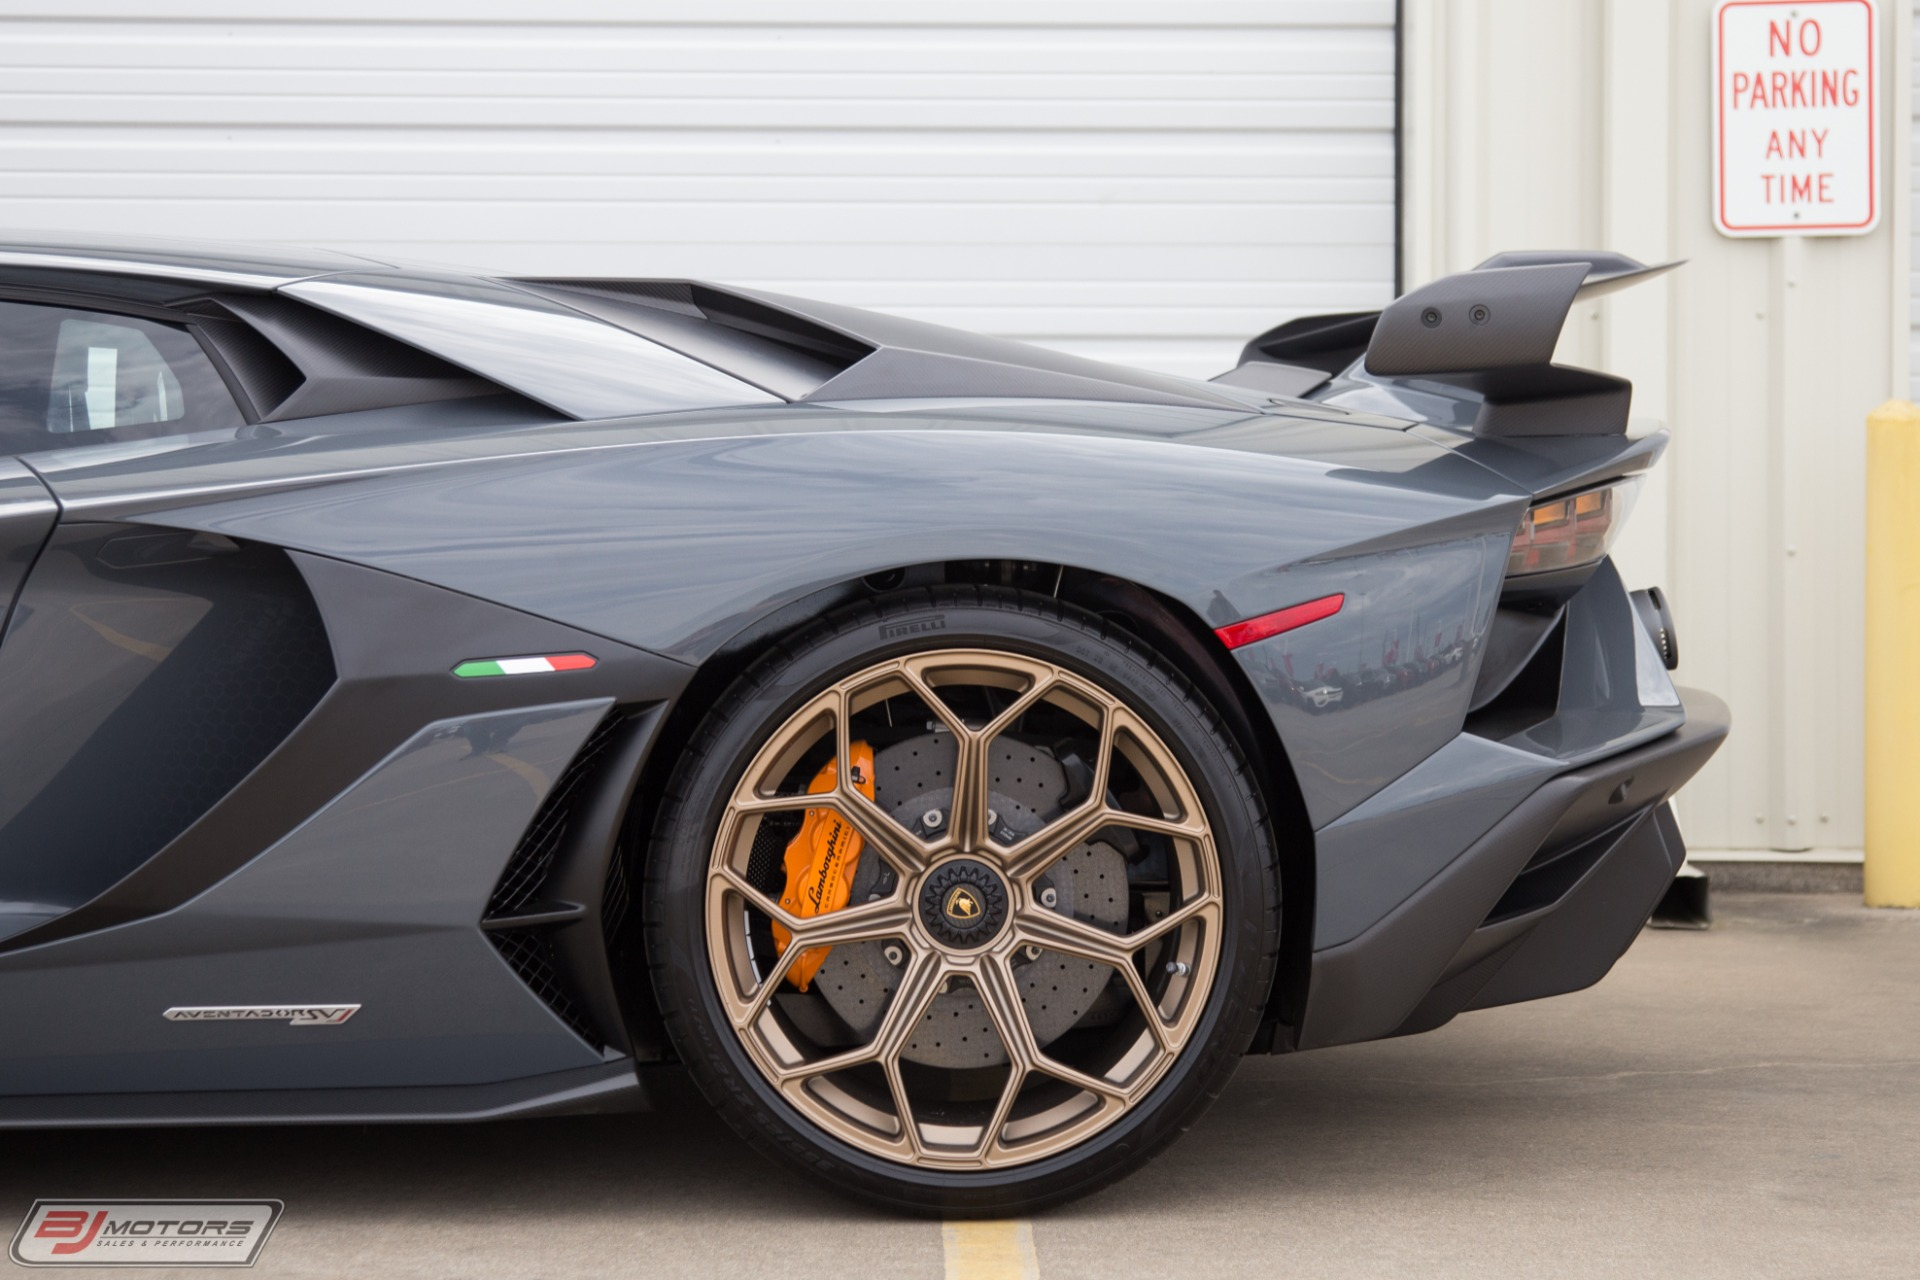 New-2019-Lamborghini-Aventador-SVJ-LP770-4-Delivery-Miles-Available-Now-No-Wait